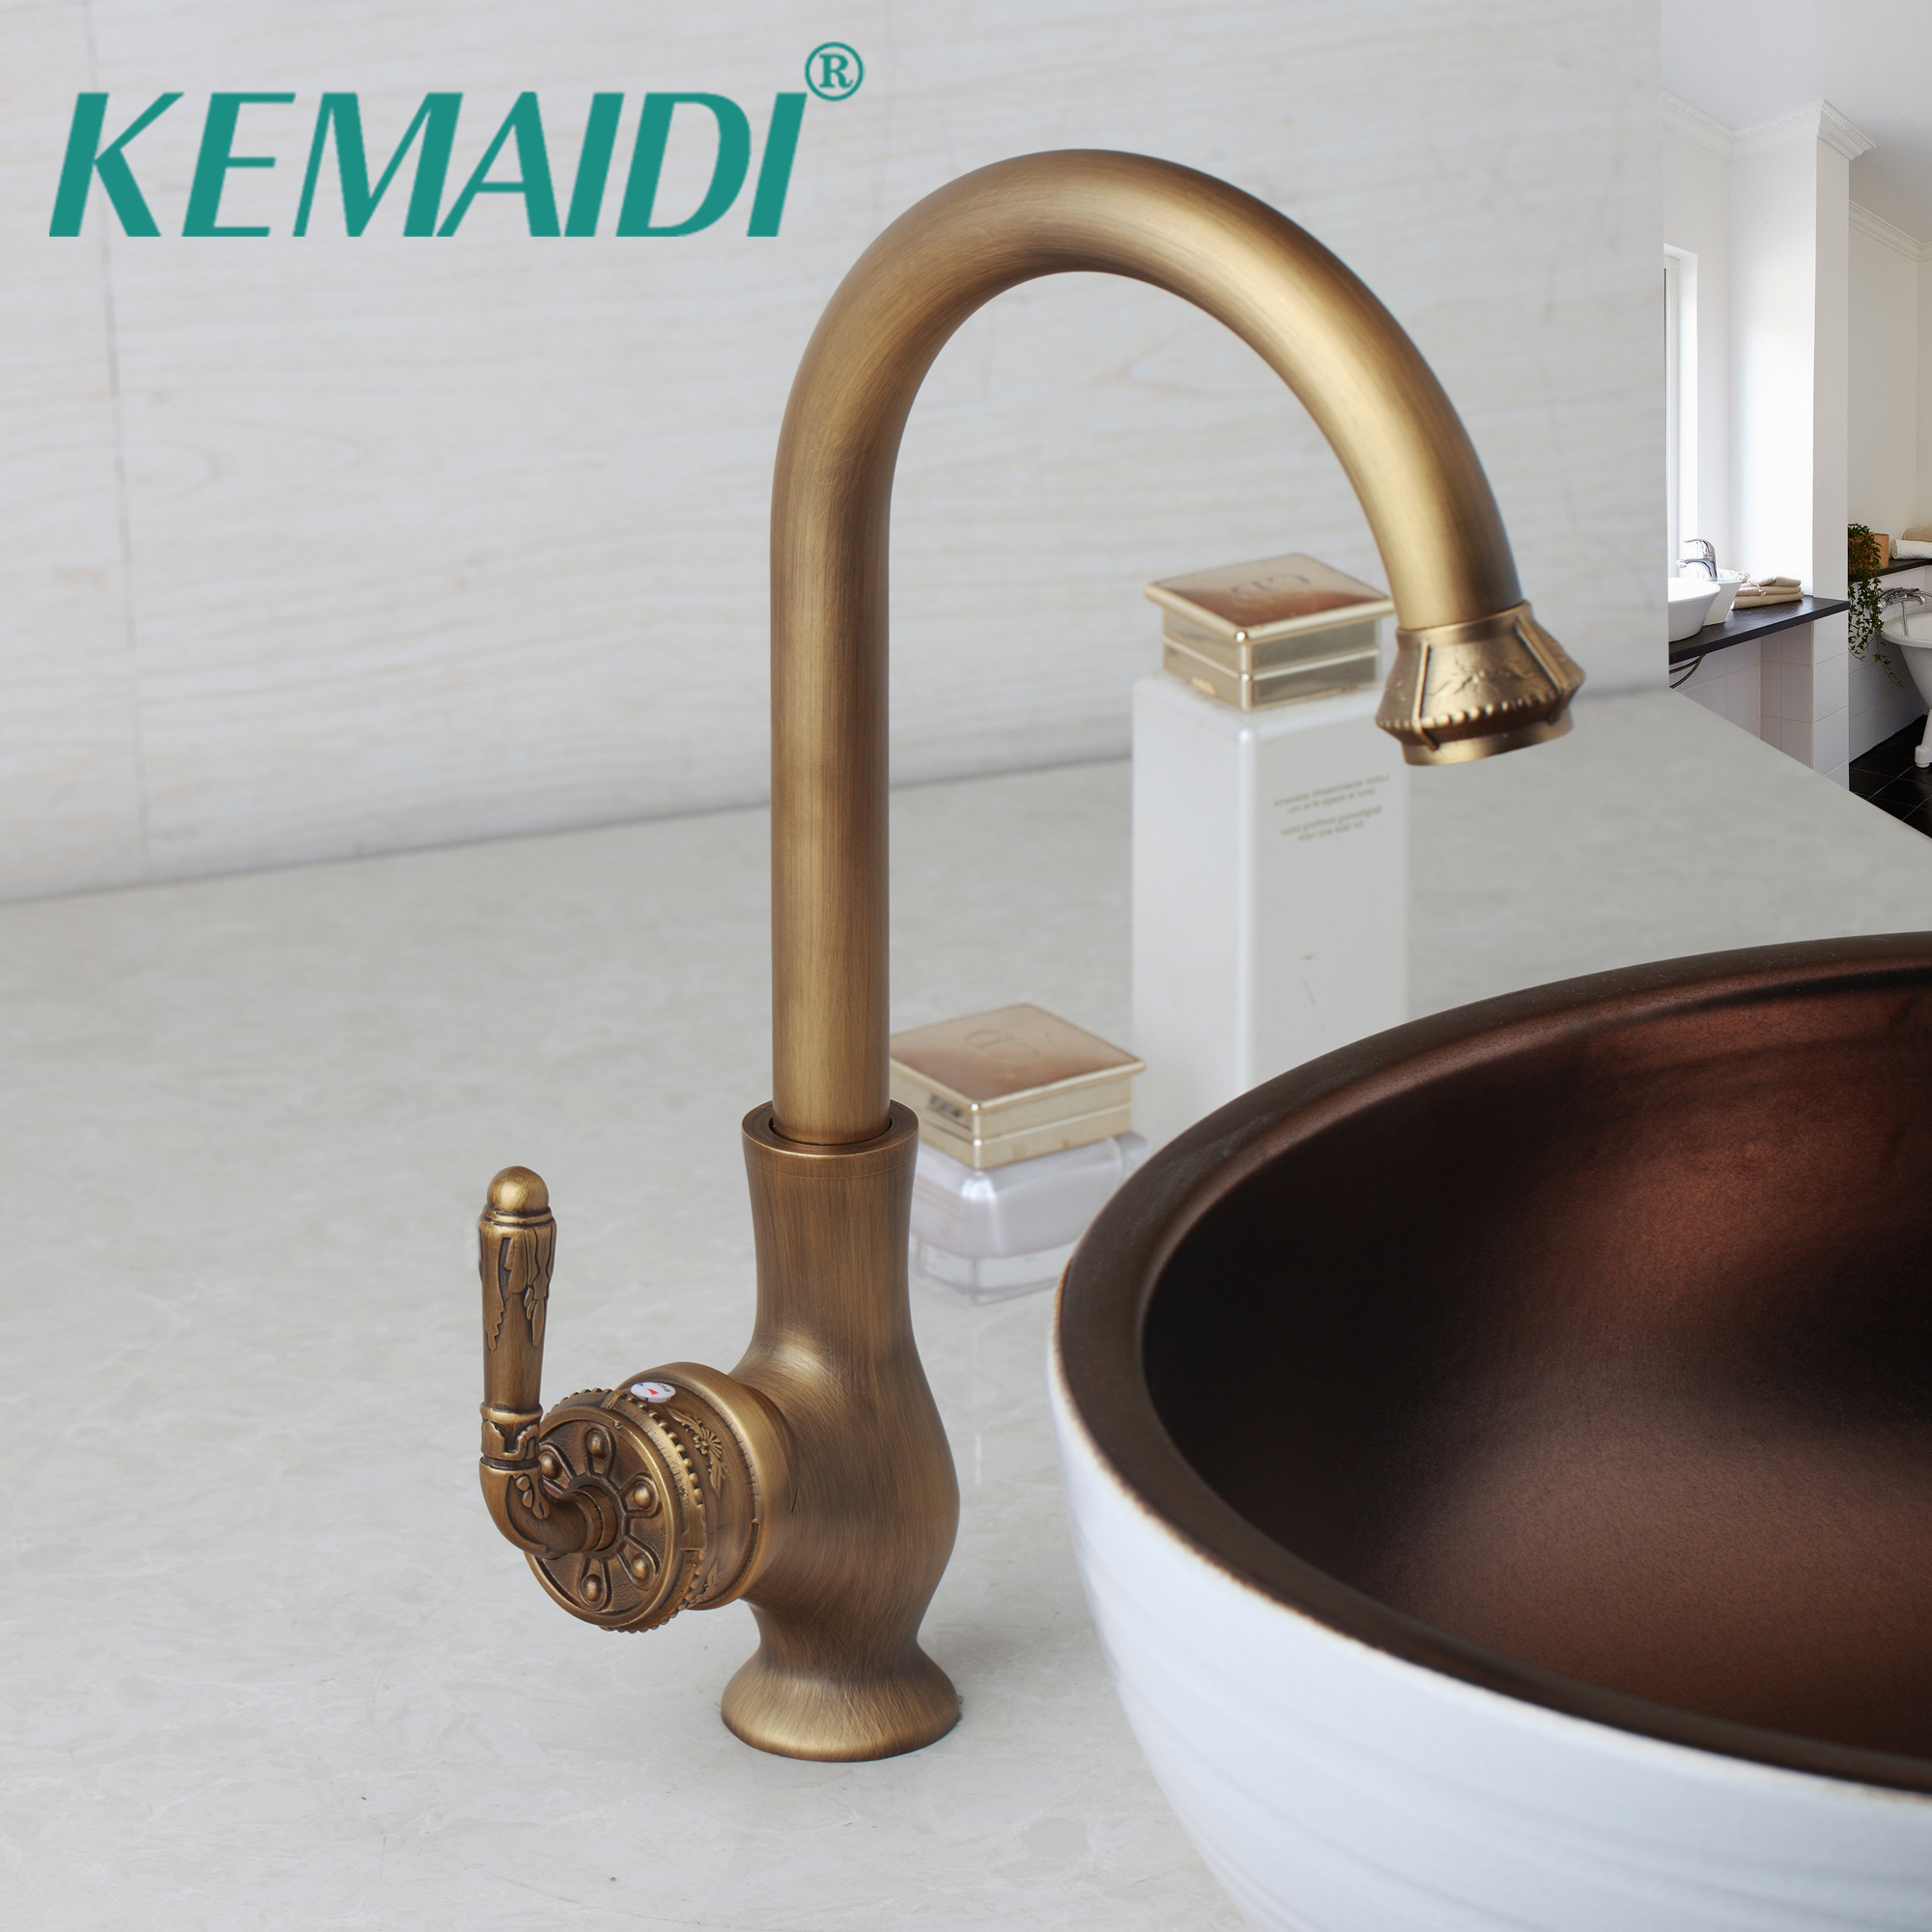 KEMAIDI Bathroom Sink Swivel Bathroom Faucet Tap Brass Basin Mixer Tap Faucet Vintage Engraved Handle Roatated Antique Brass kemaidi 3 pcs antique brass